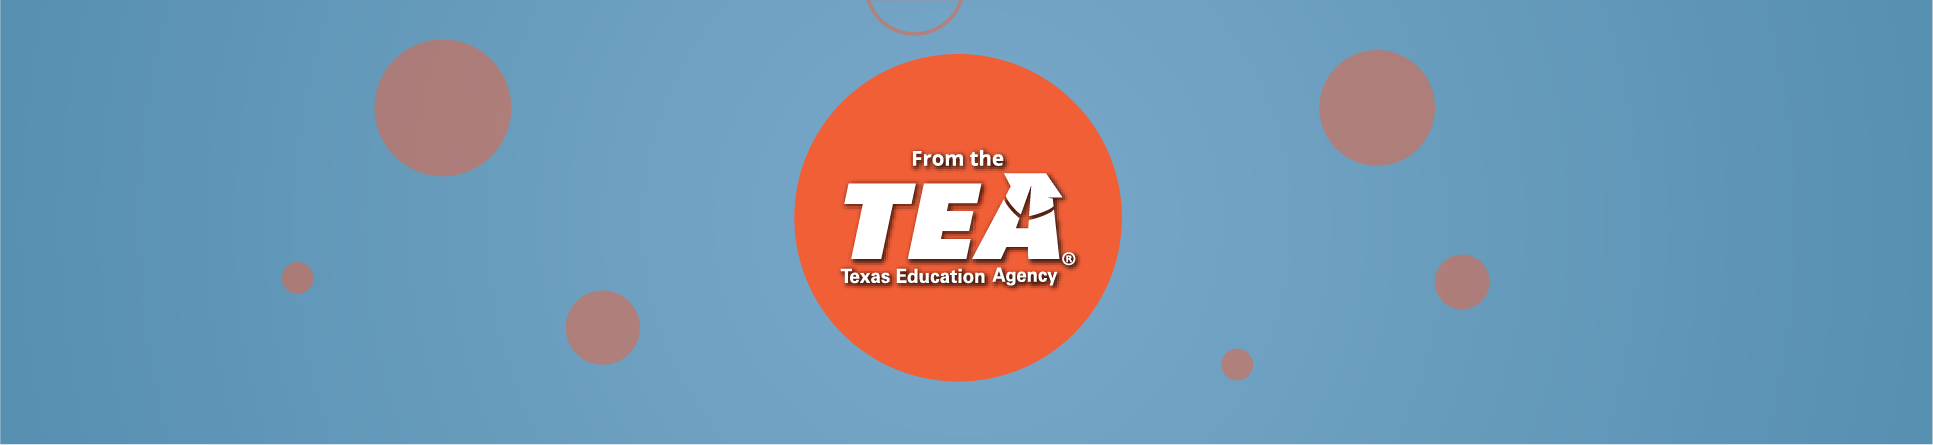 Answers in about a minute from the texas education agency